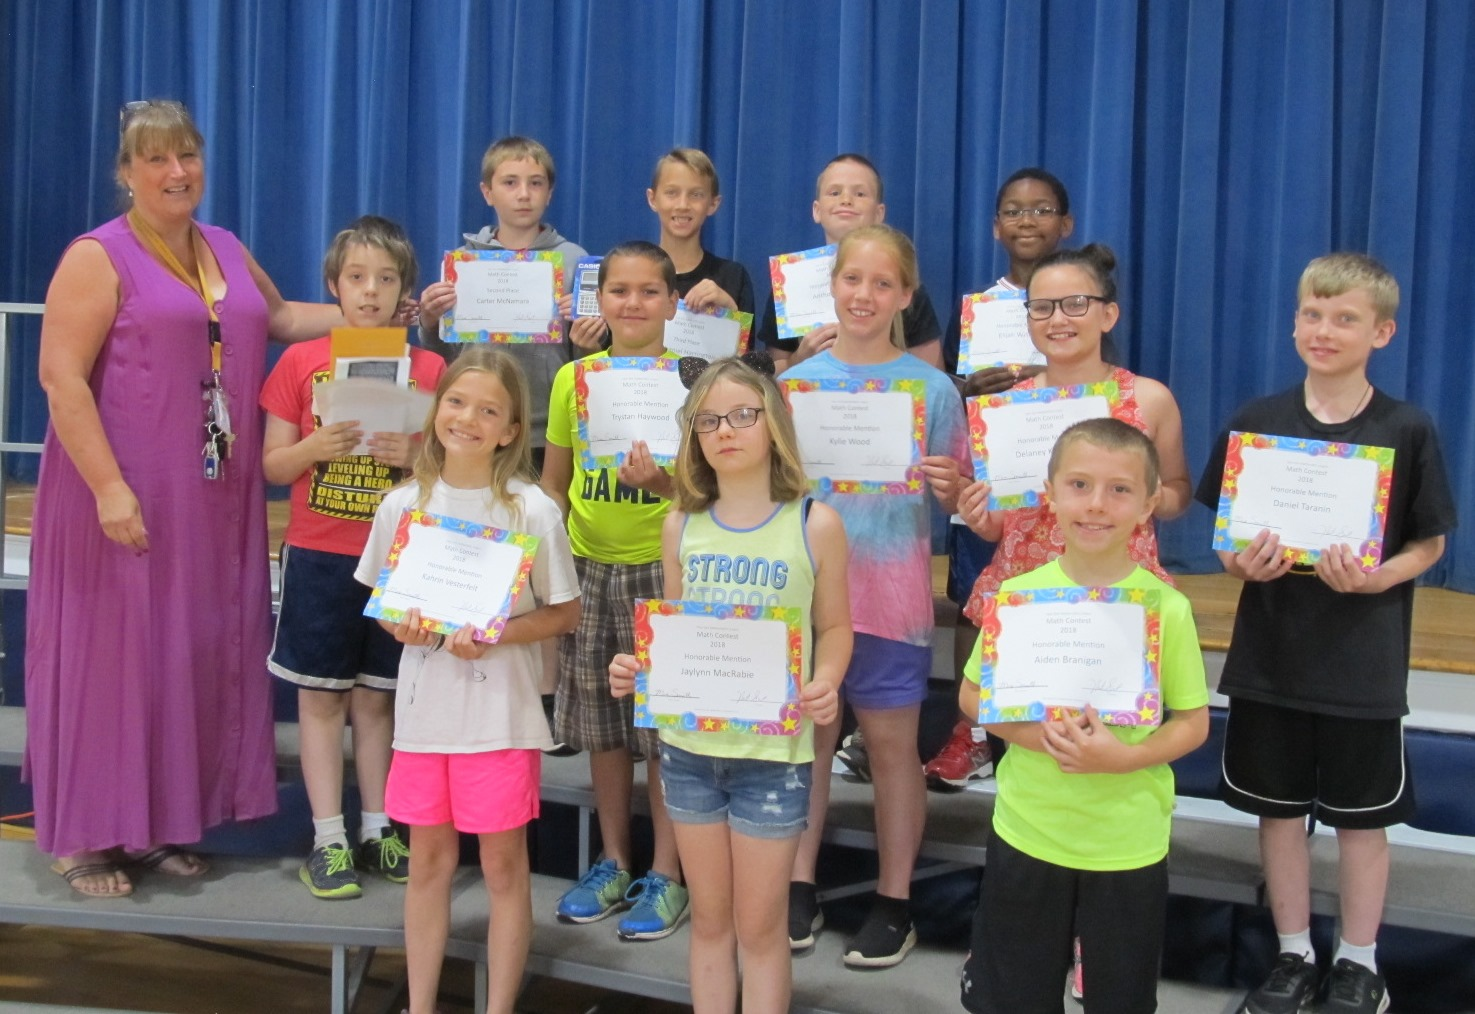 Math Awards: